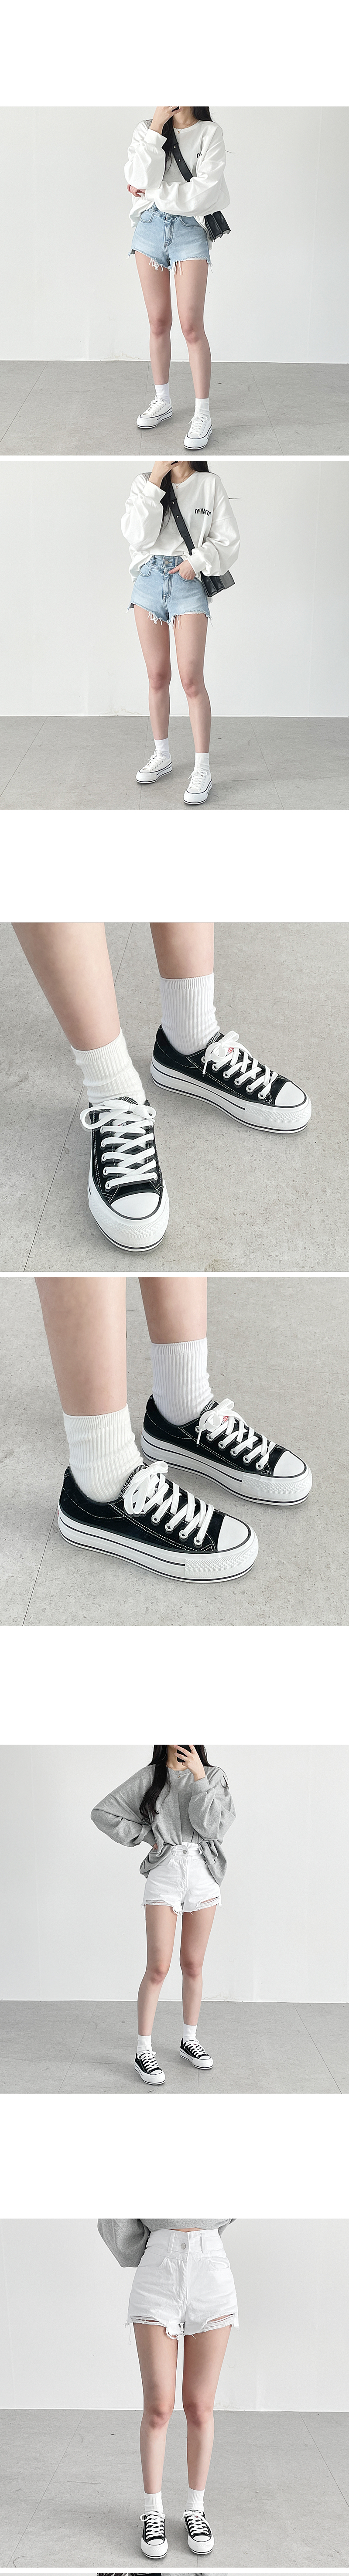 Every cotton sneakers